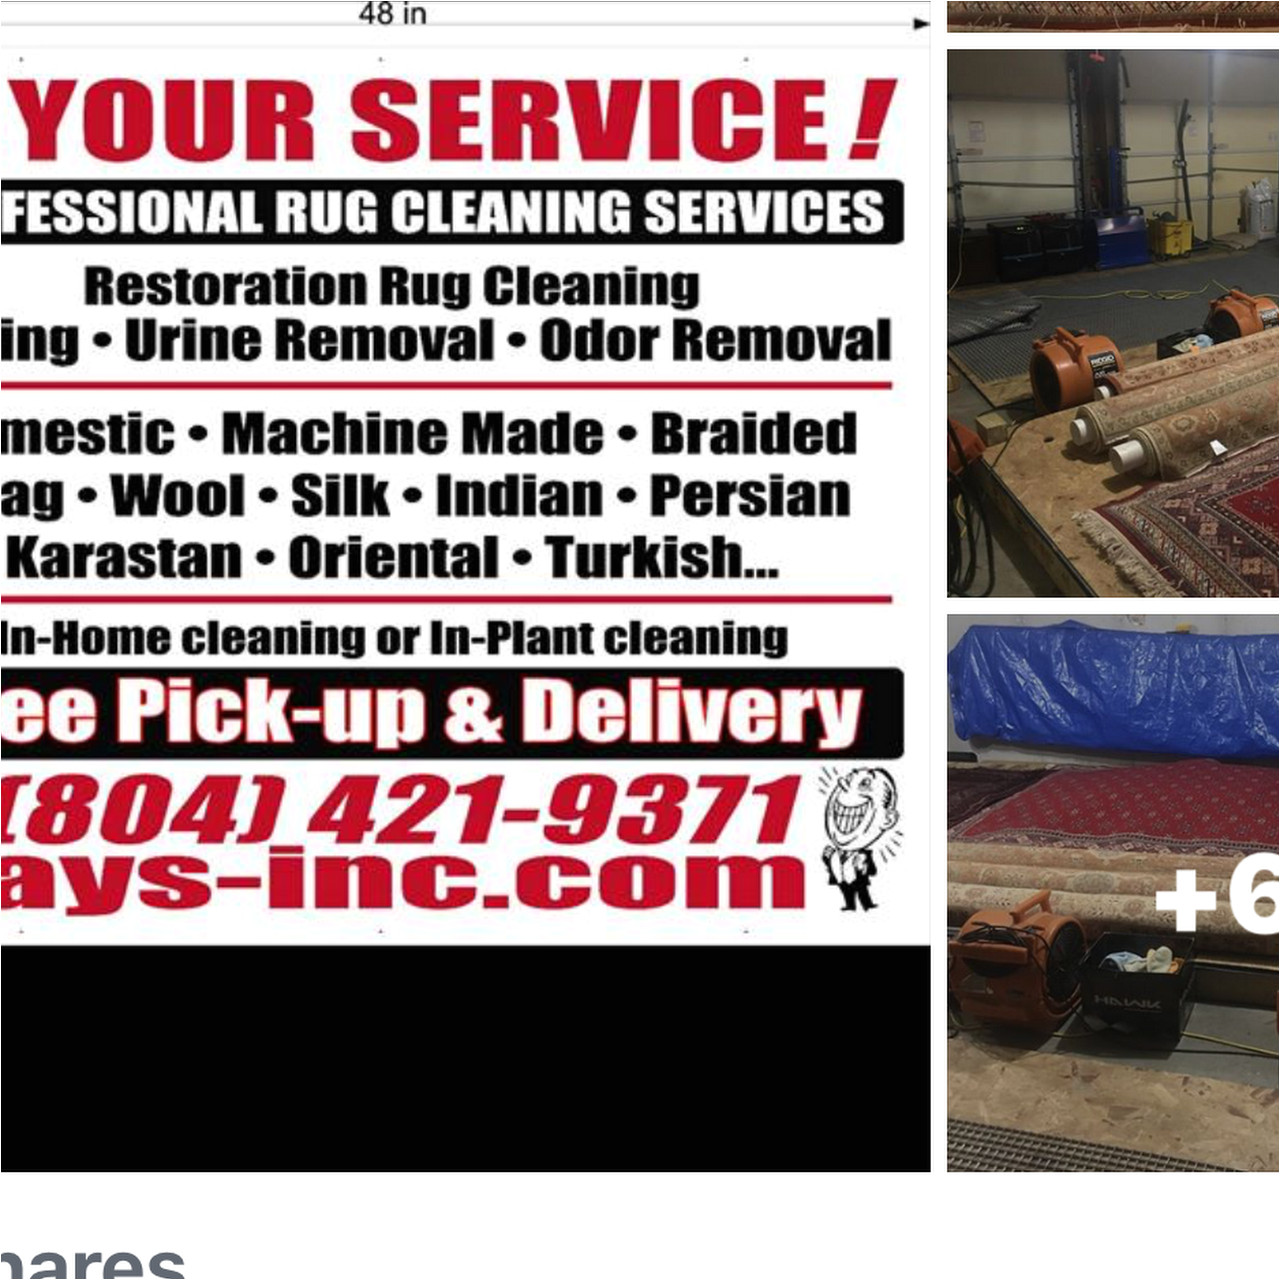 posted on jul 10 2018 richmond s affordable professional rug cleaning services